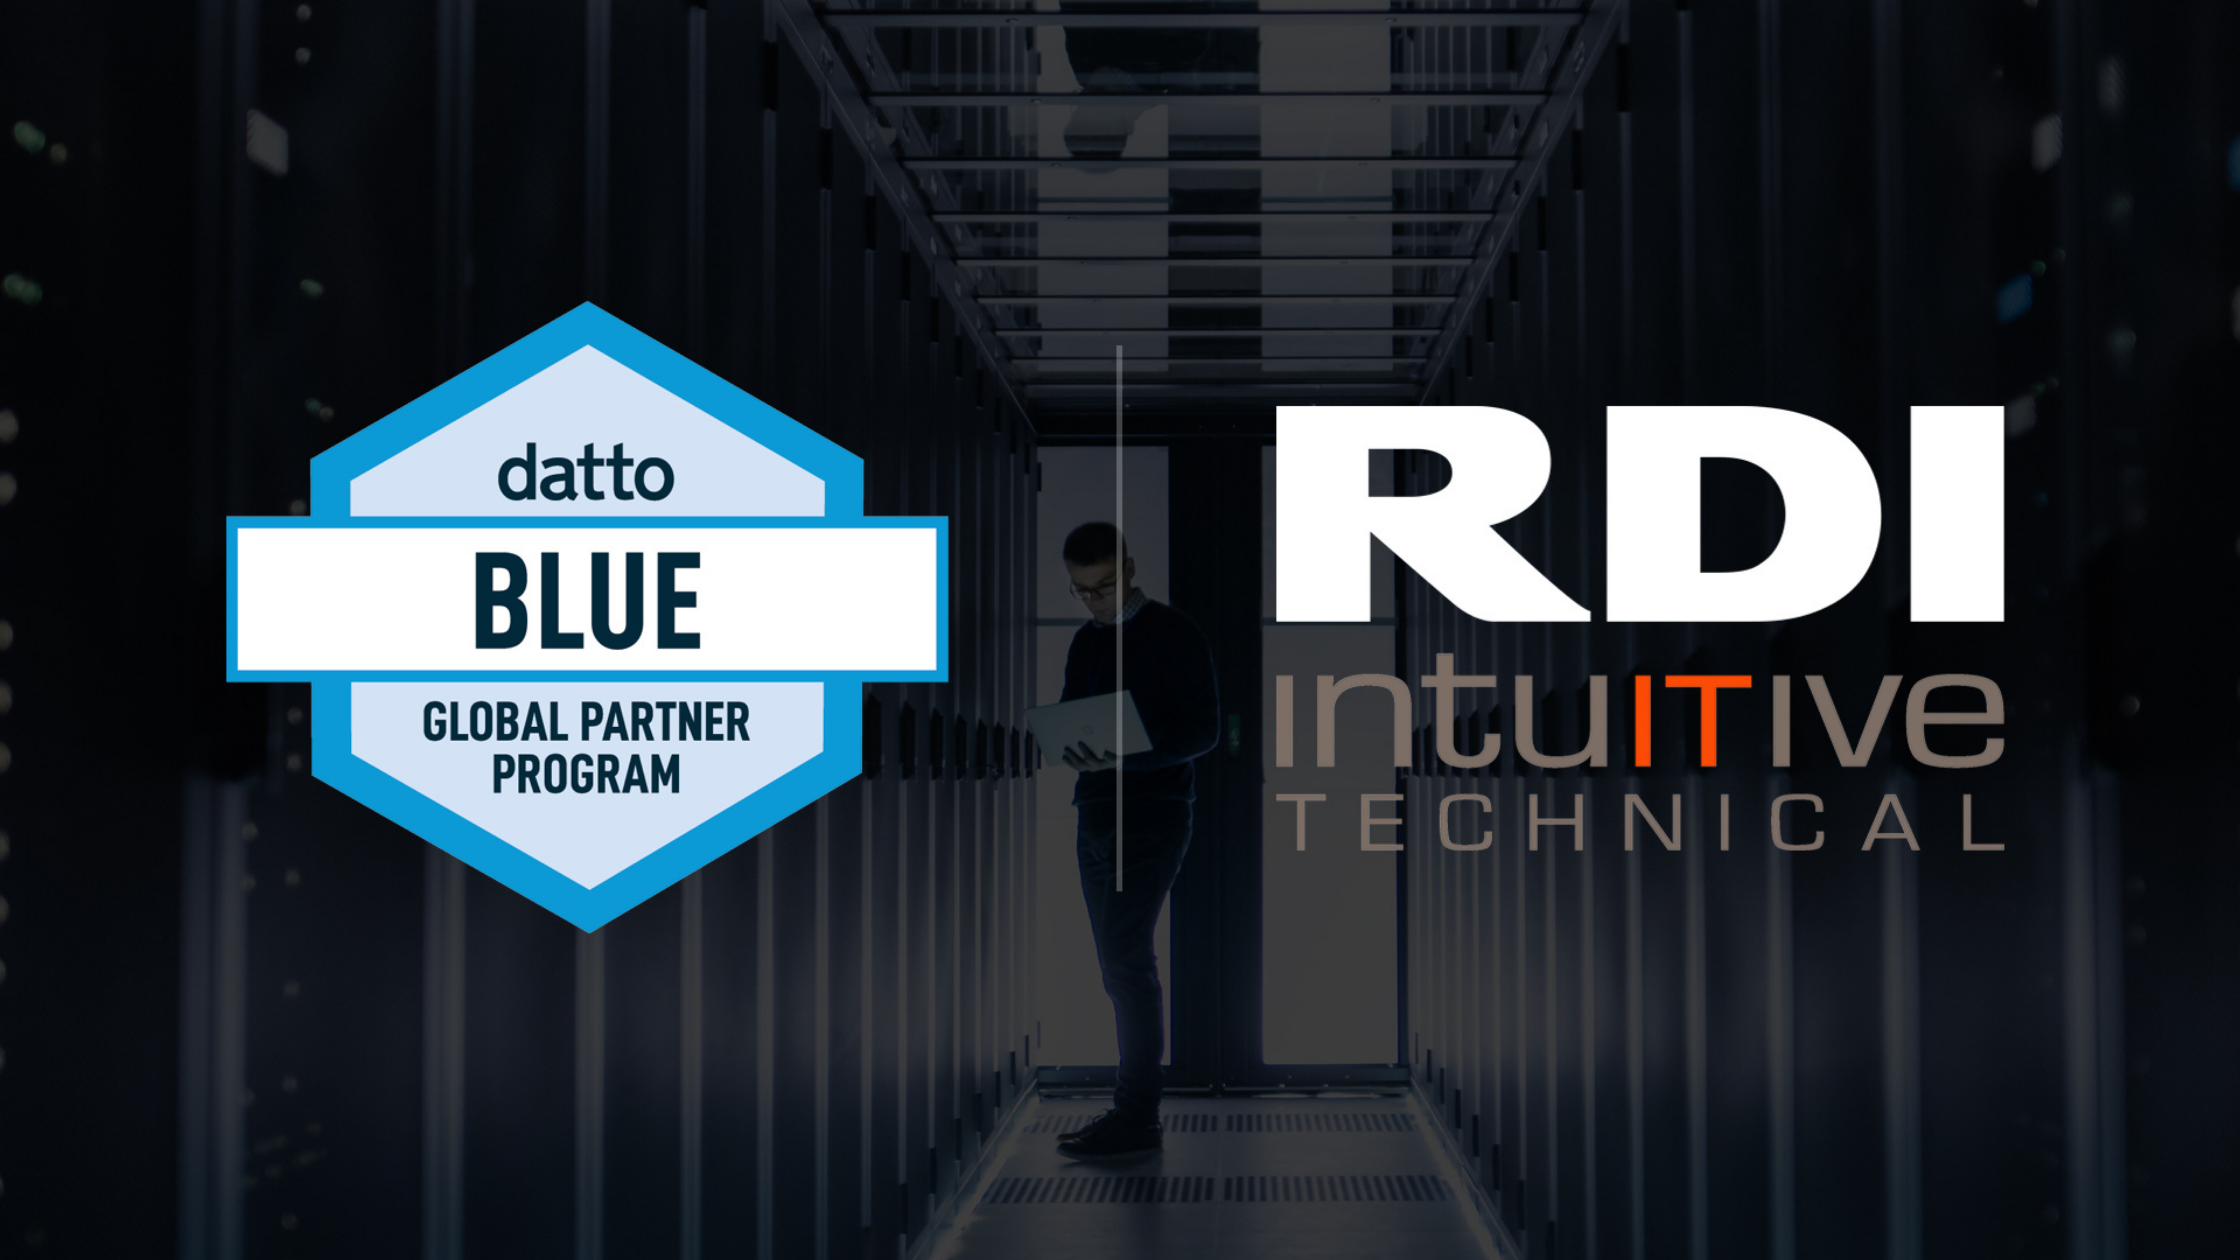 RDI Intuitive Technical - blue diamond security partner with Datto